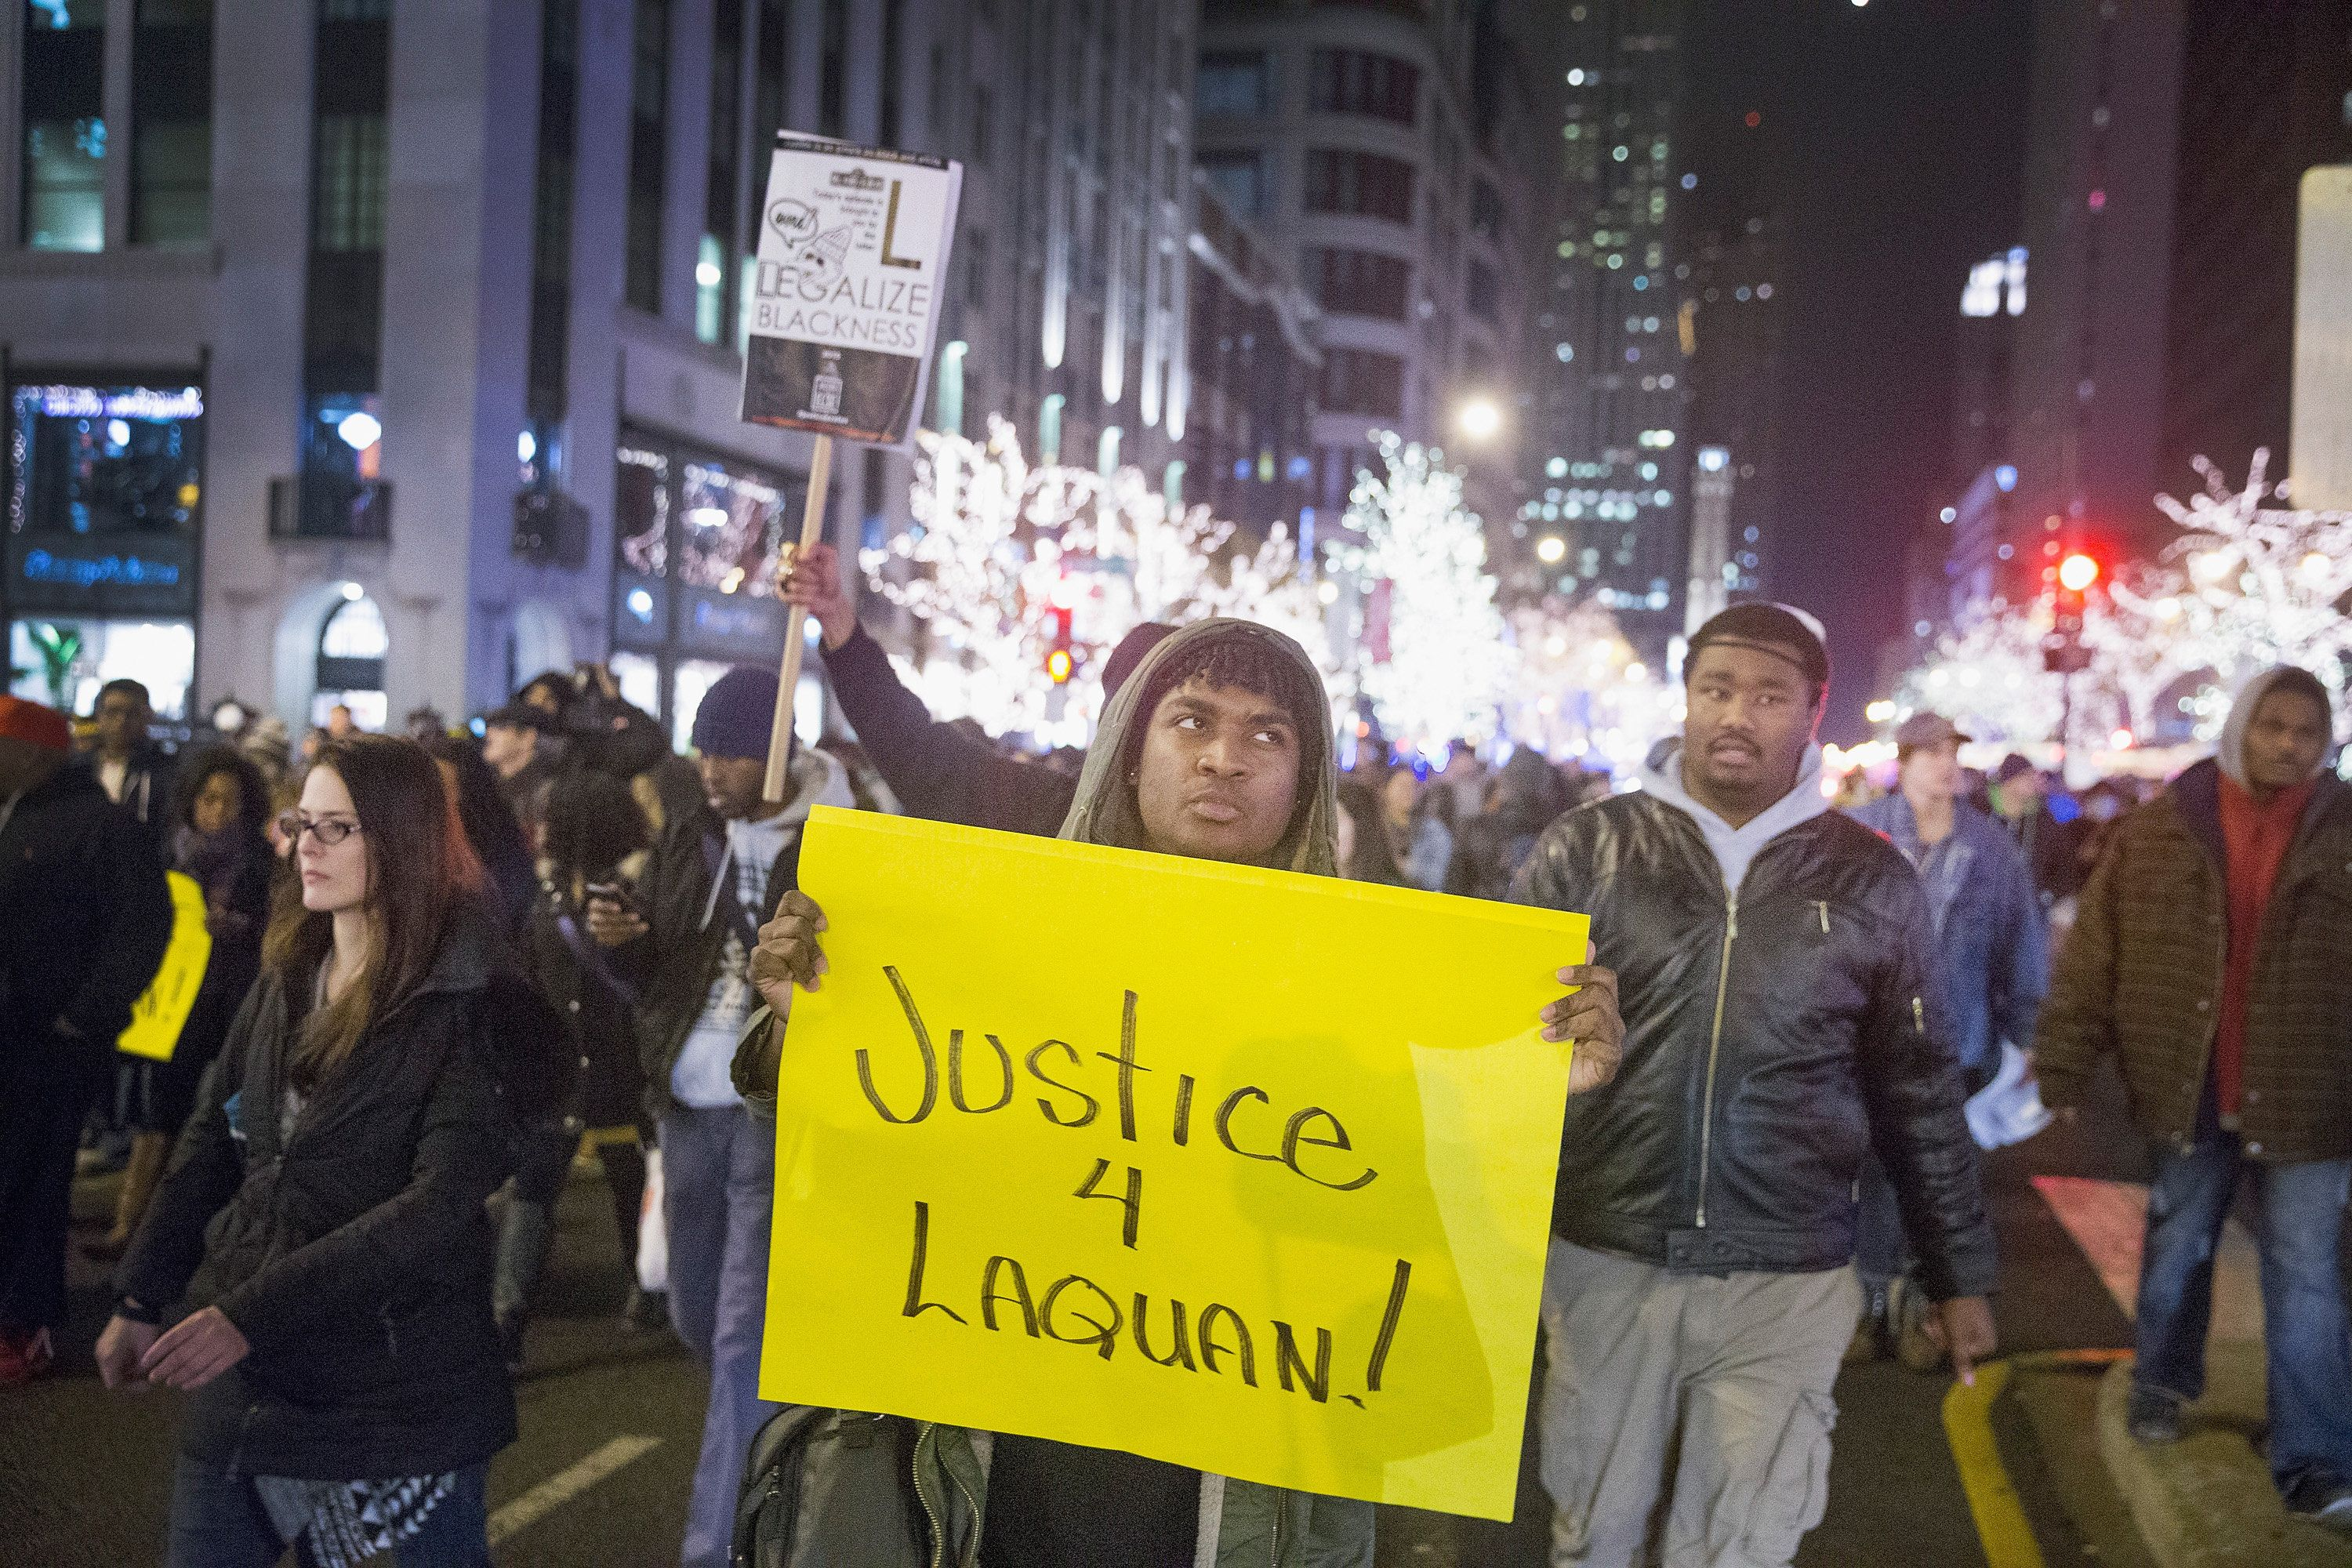 CHICAGO, IL - NOVEMBER 25:  Demonstrators protest in the middle of Michigan Avenue along the Magnificent Mile shopping district on November 25, 2015 in Chicago, Illinois. Small and mostly peaceful protests have sprouted up around the city following yesterday's release of a video showing Chicago Police officer Jason Van Dyke shooting and killing Laquan McDonald. Van Dyke has been charged with first degree murder for the October 20, 2014 shooting in which McDonald was hit with 16 bullets.  (Photo by Scott Olson/Getty Images)